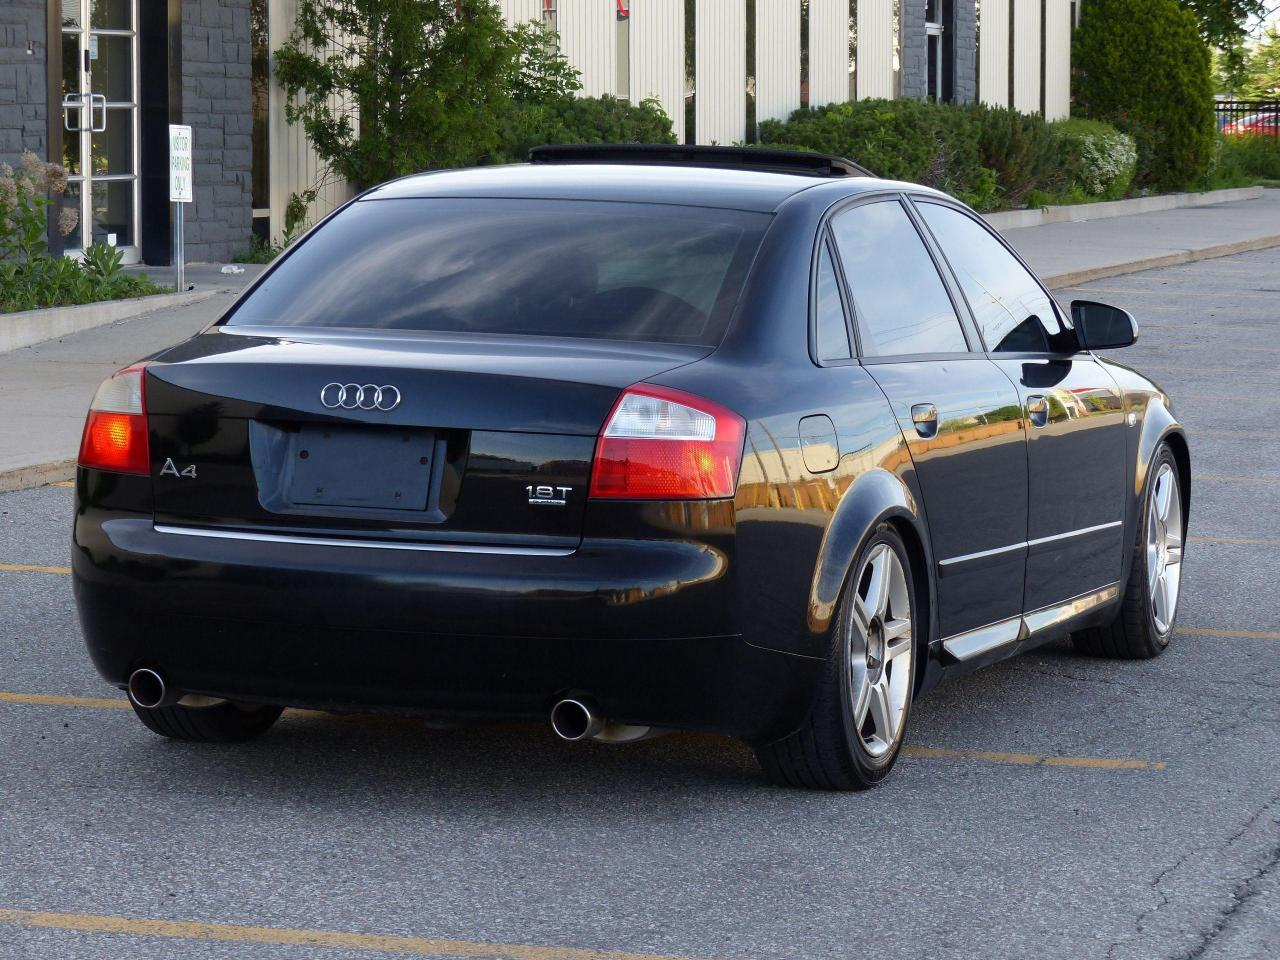 Used 2005 Audi A4 1.8 TURBO,QUATTRO,FULLY LOADED,S4 ...